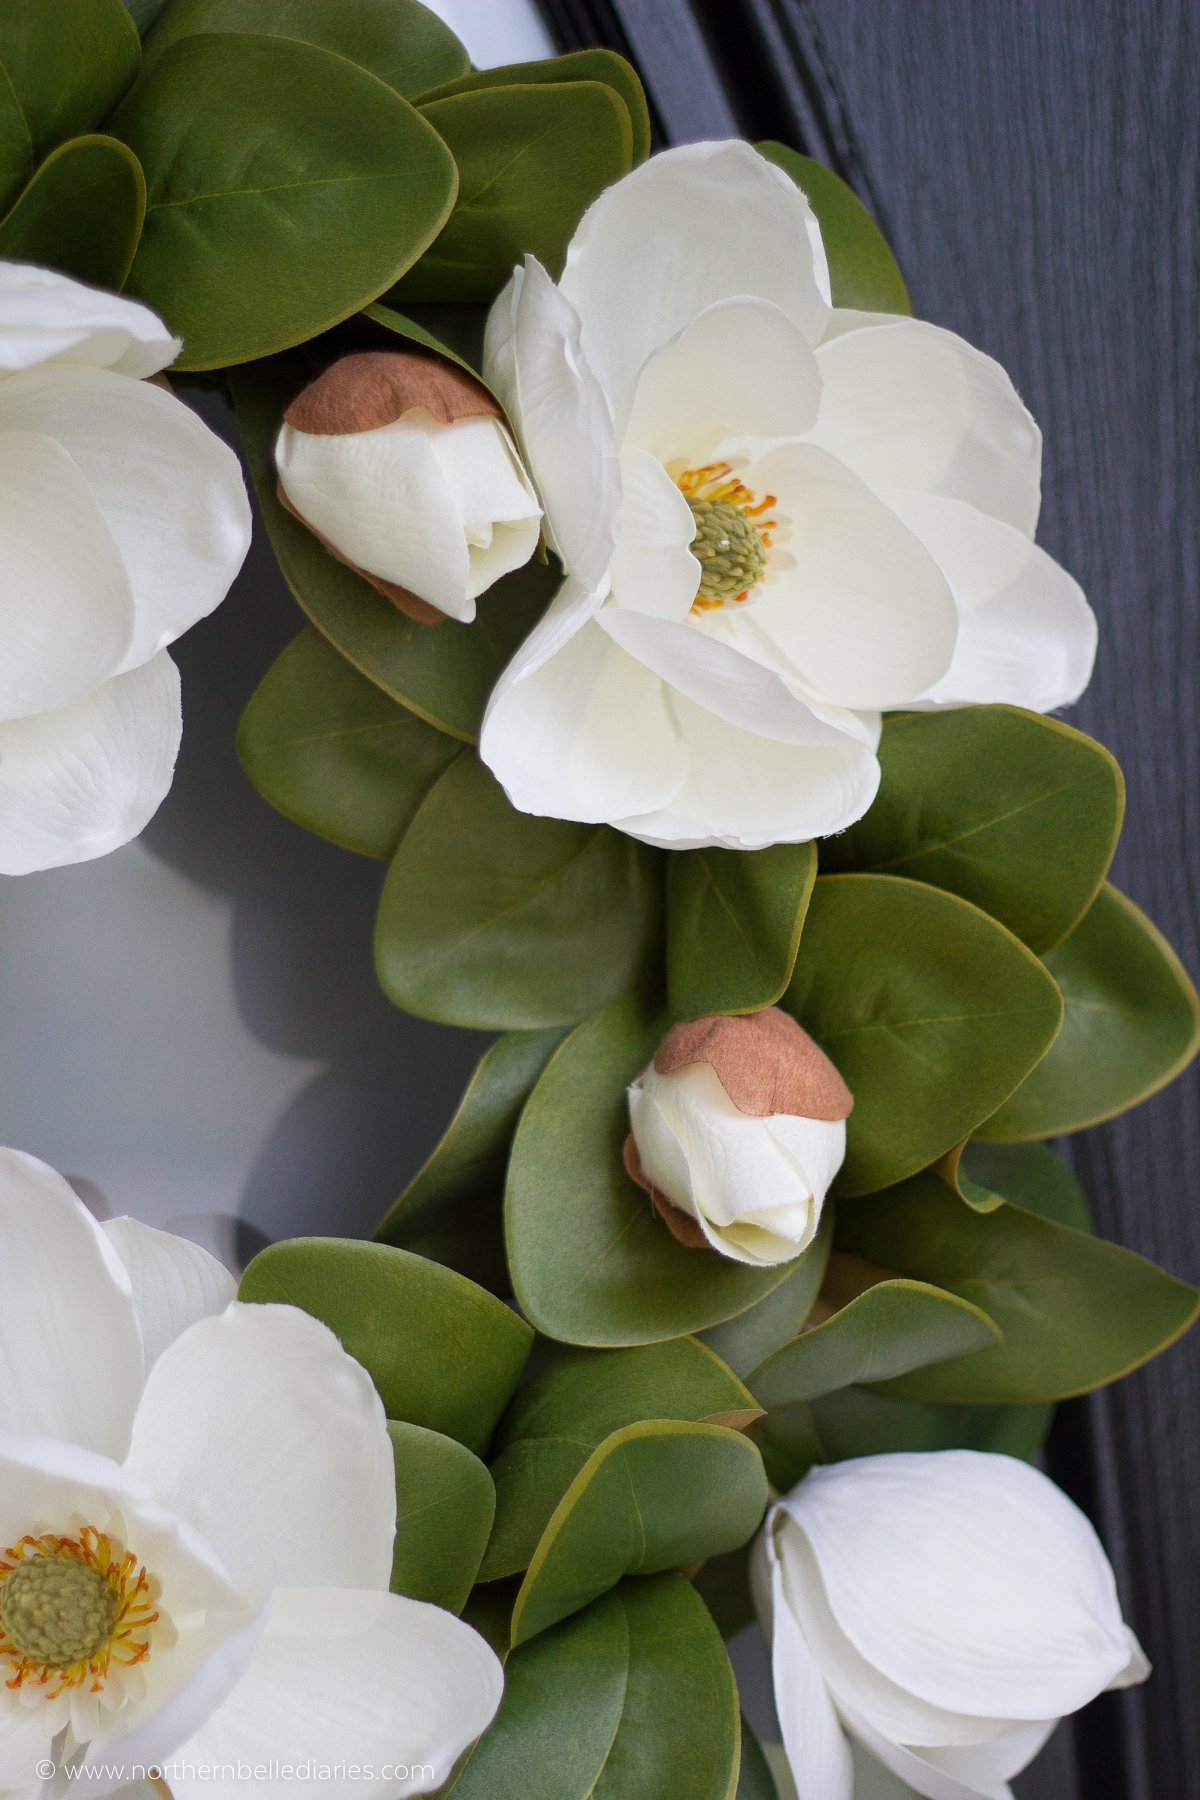 southern magnolia wreath pier 1 #magnolia #decor #springdecor #spring #decor